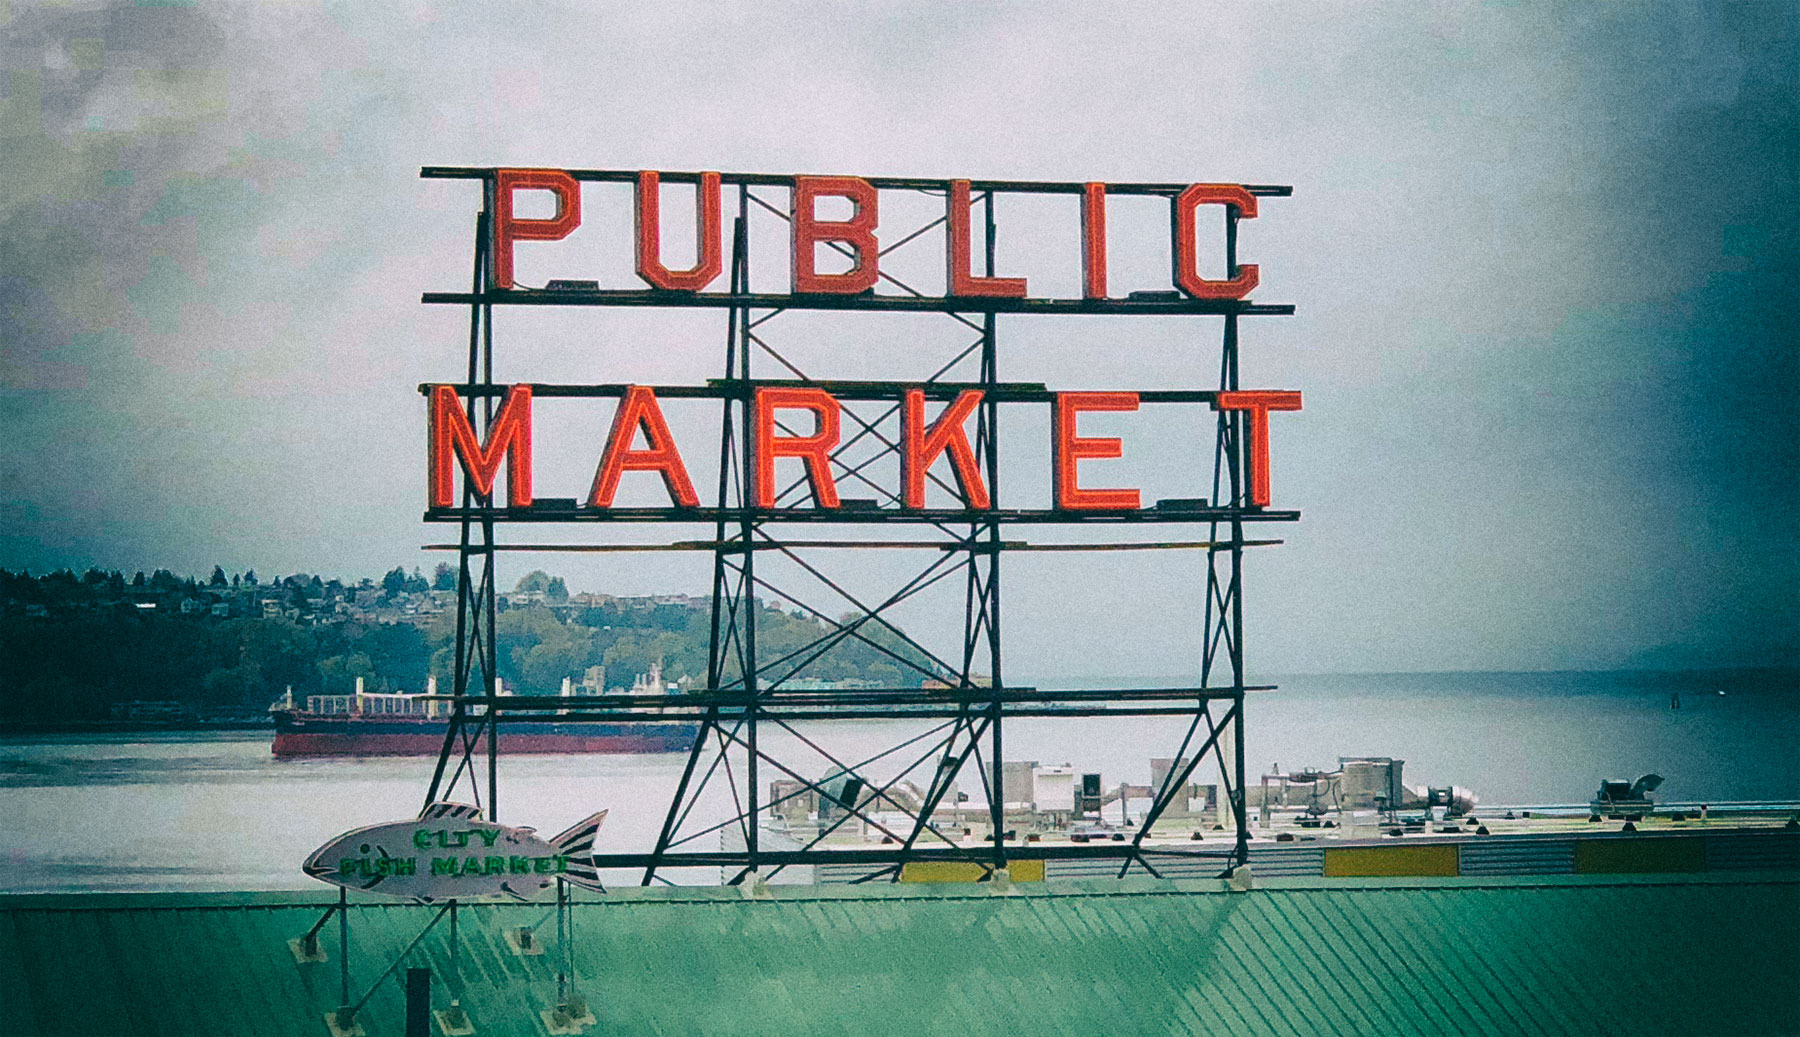 Pike Place Public Market, Seattle, WA